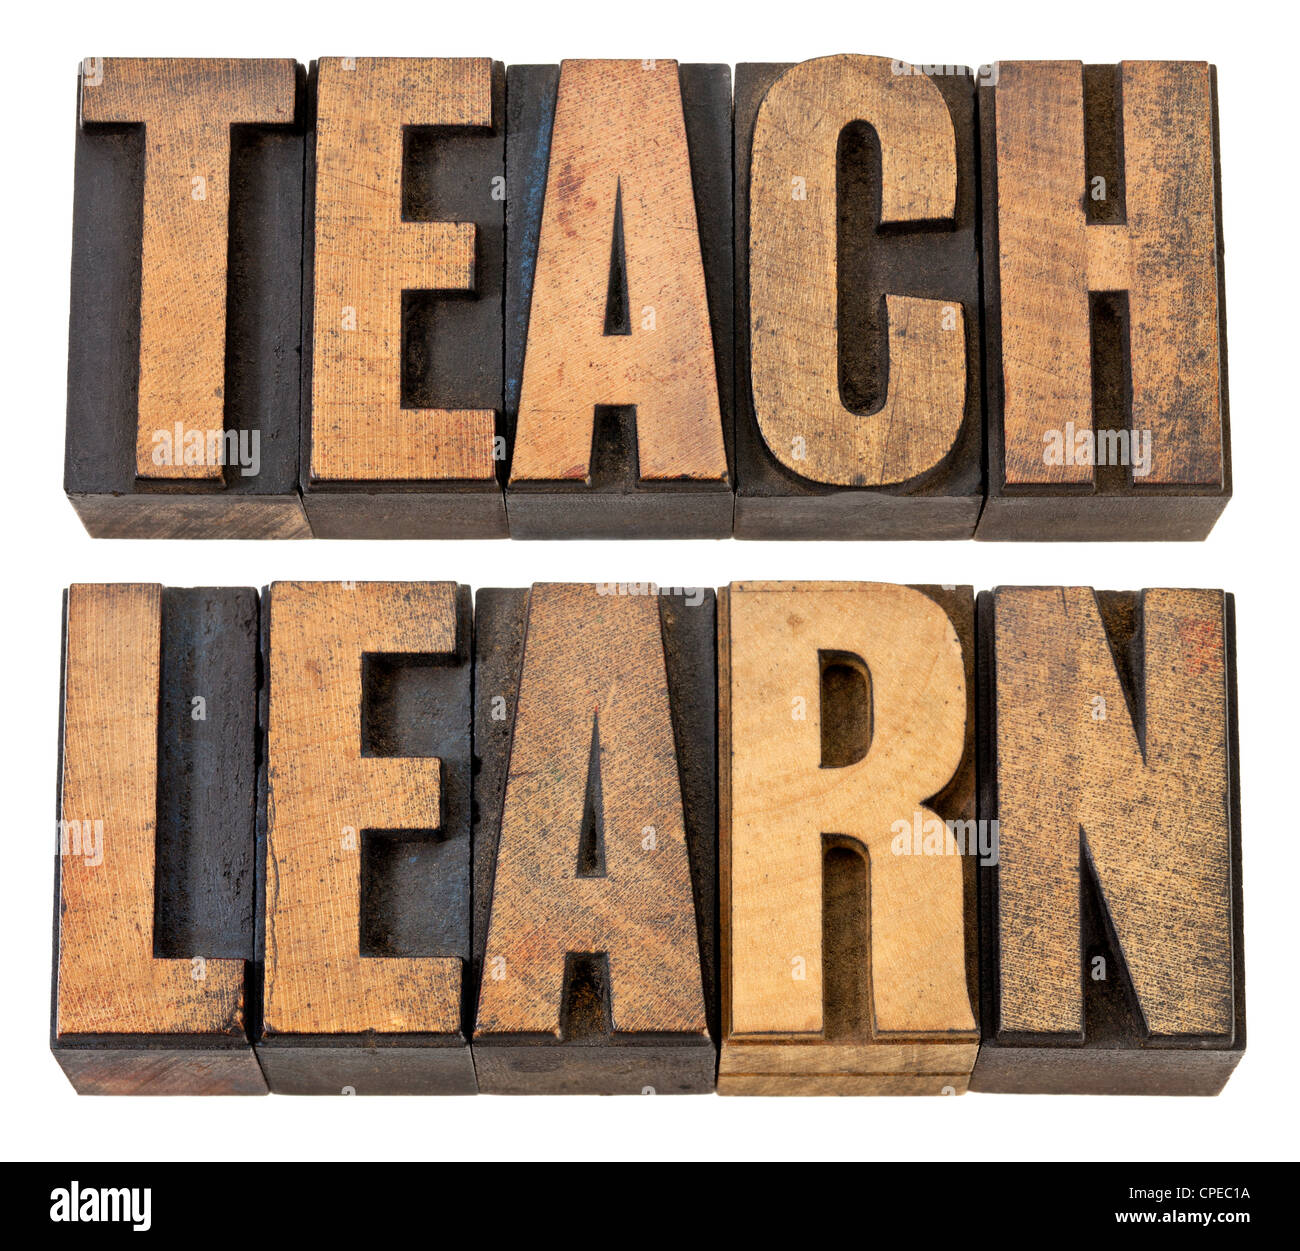 teach and learn - education concept - isolated words in vintage letterpress wood type - Stock Image